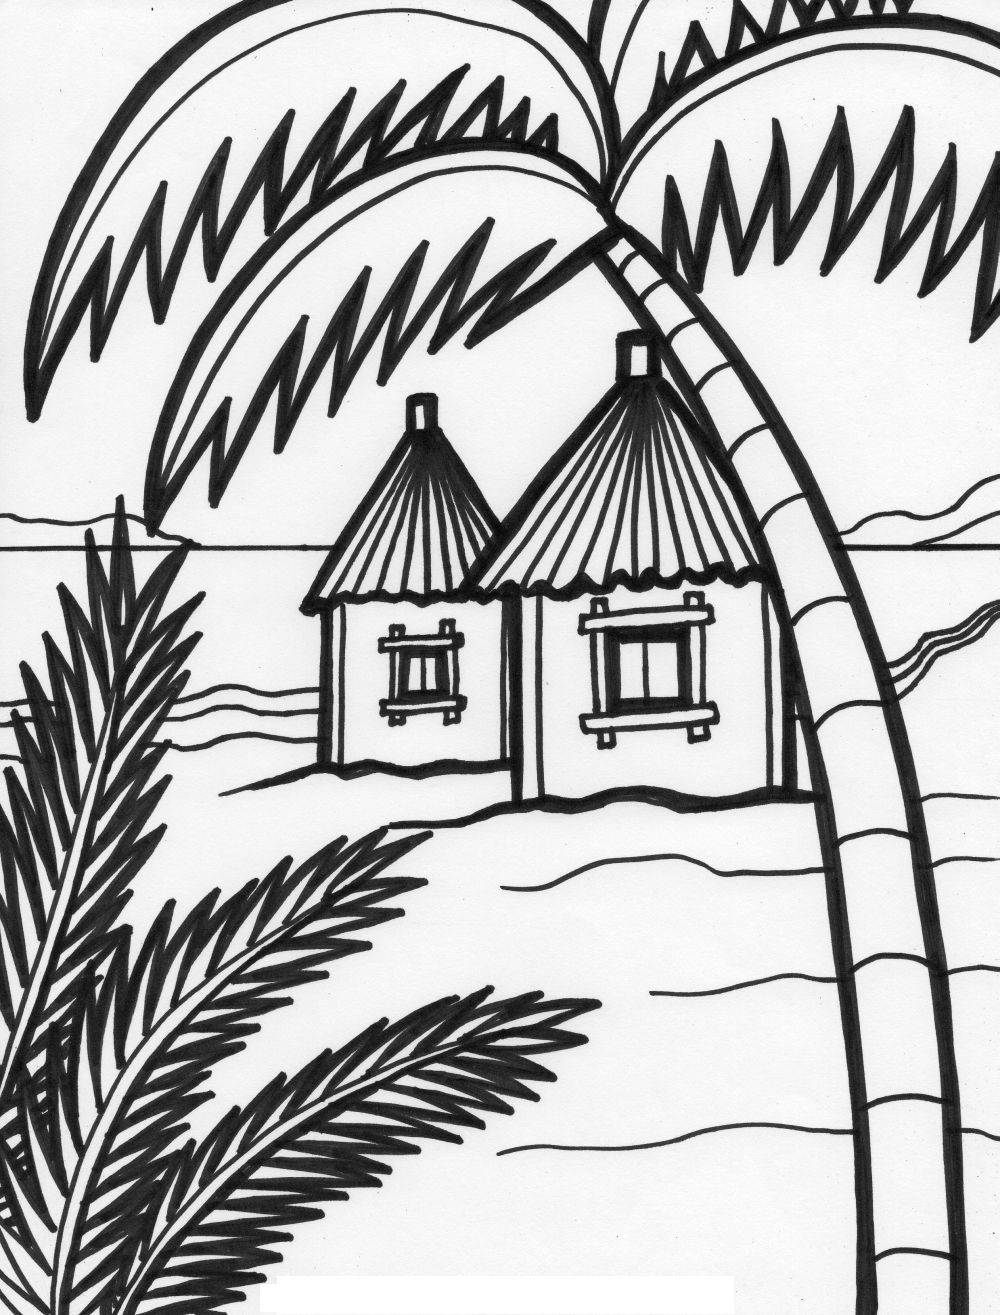 Beach House Coloring Pages Kids Coloring Pages Outline